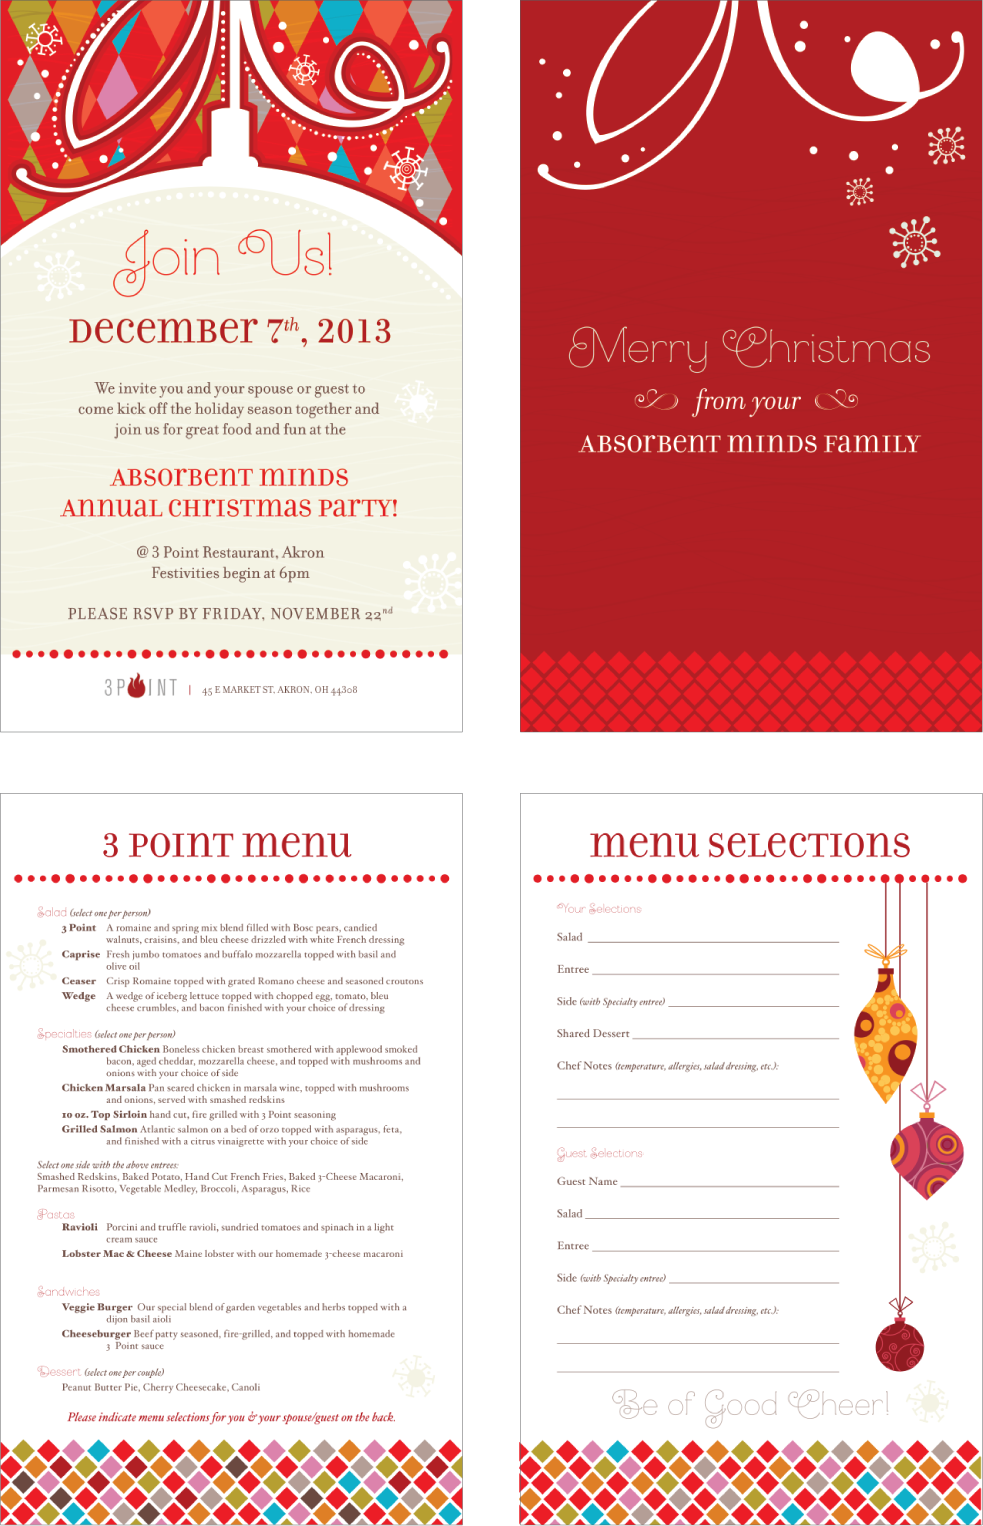 AMMS Staff Holiday Party Invitations on Behance